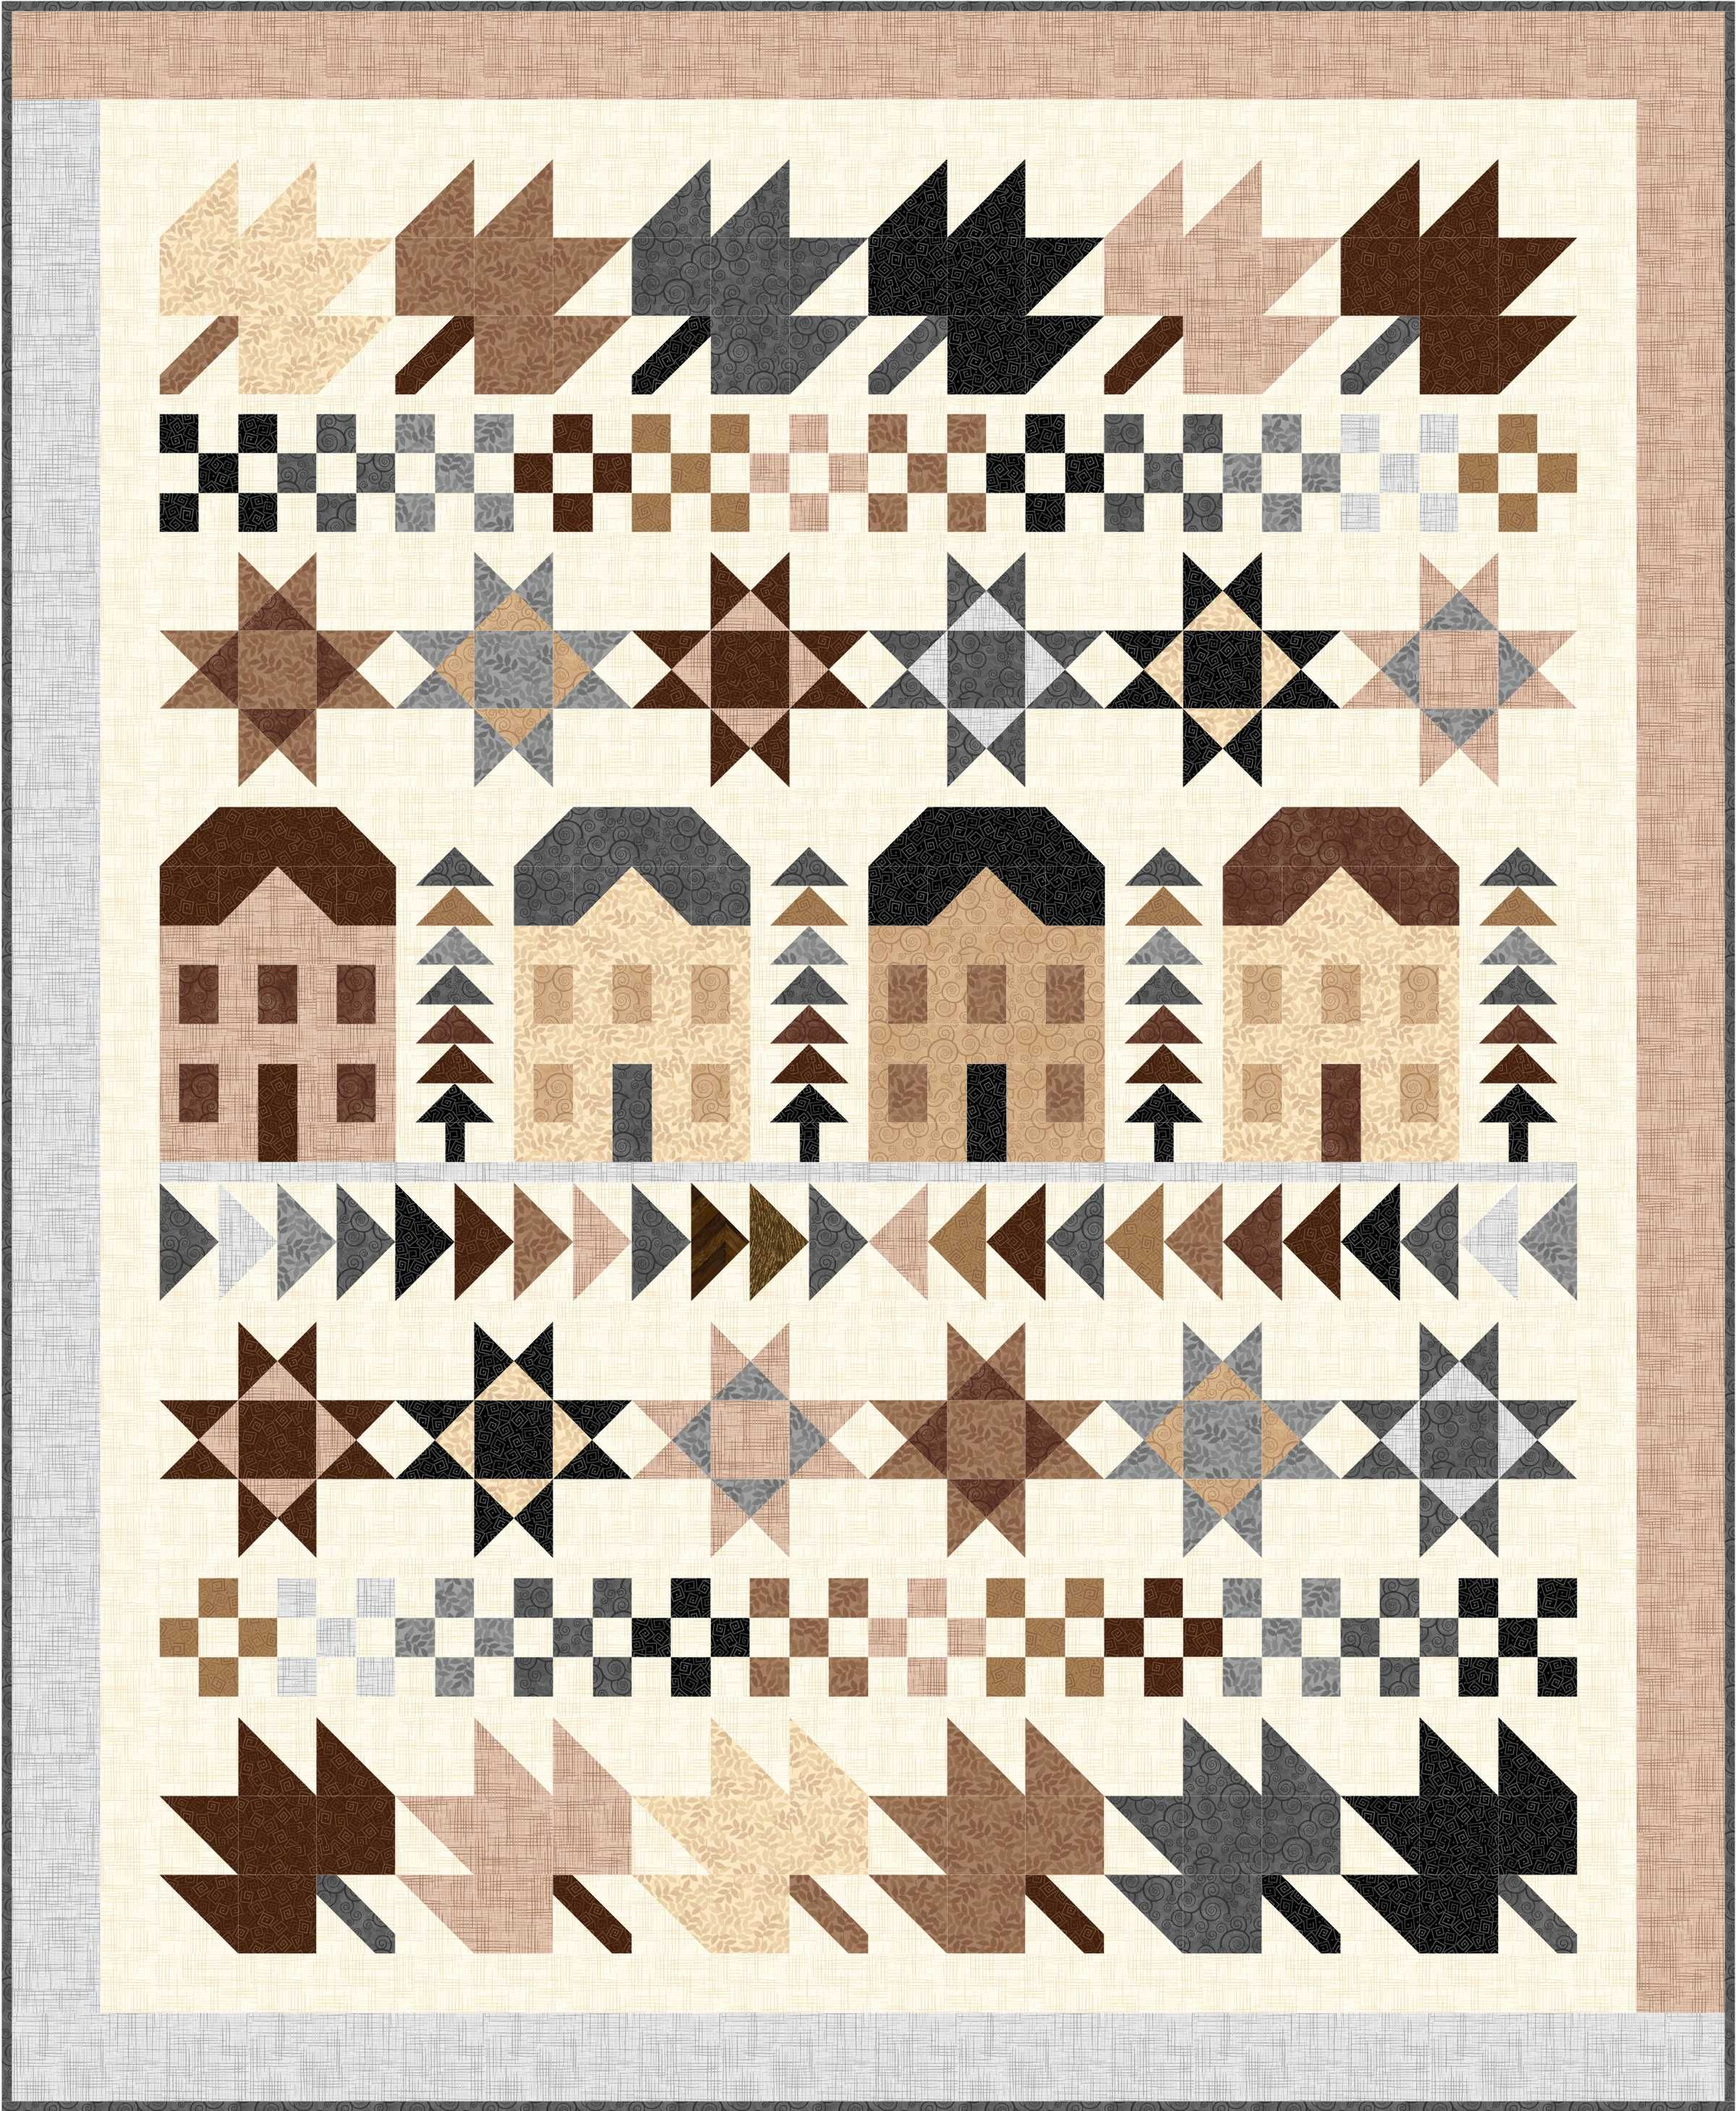 Ready, set, almost…. just about & Other FREE PATTERN of Harmony ... : harmony quilt pattern - Adamdwight.com